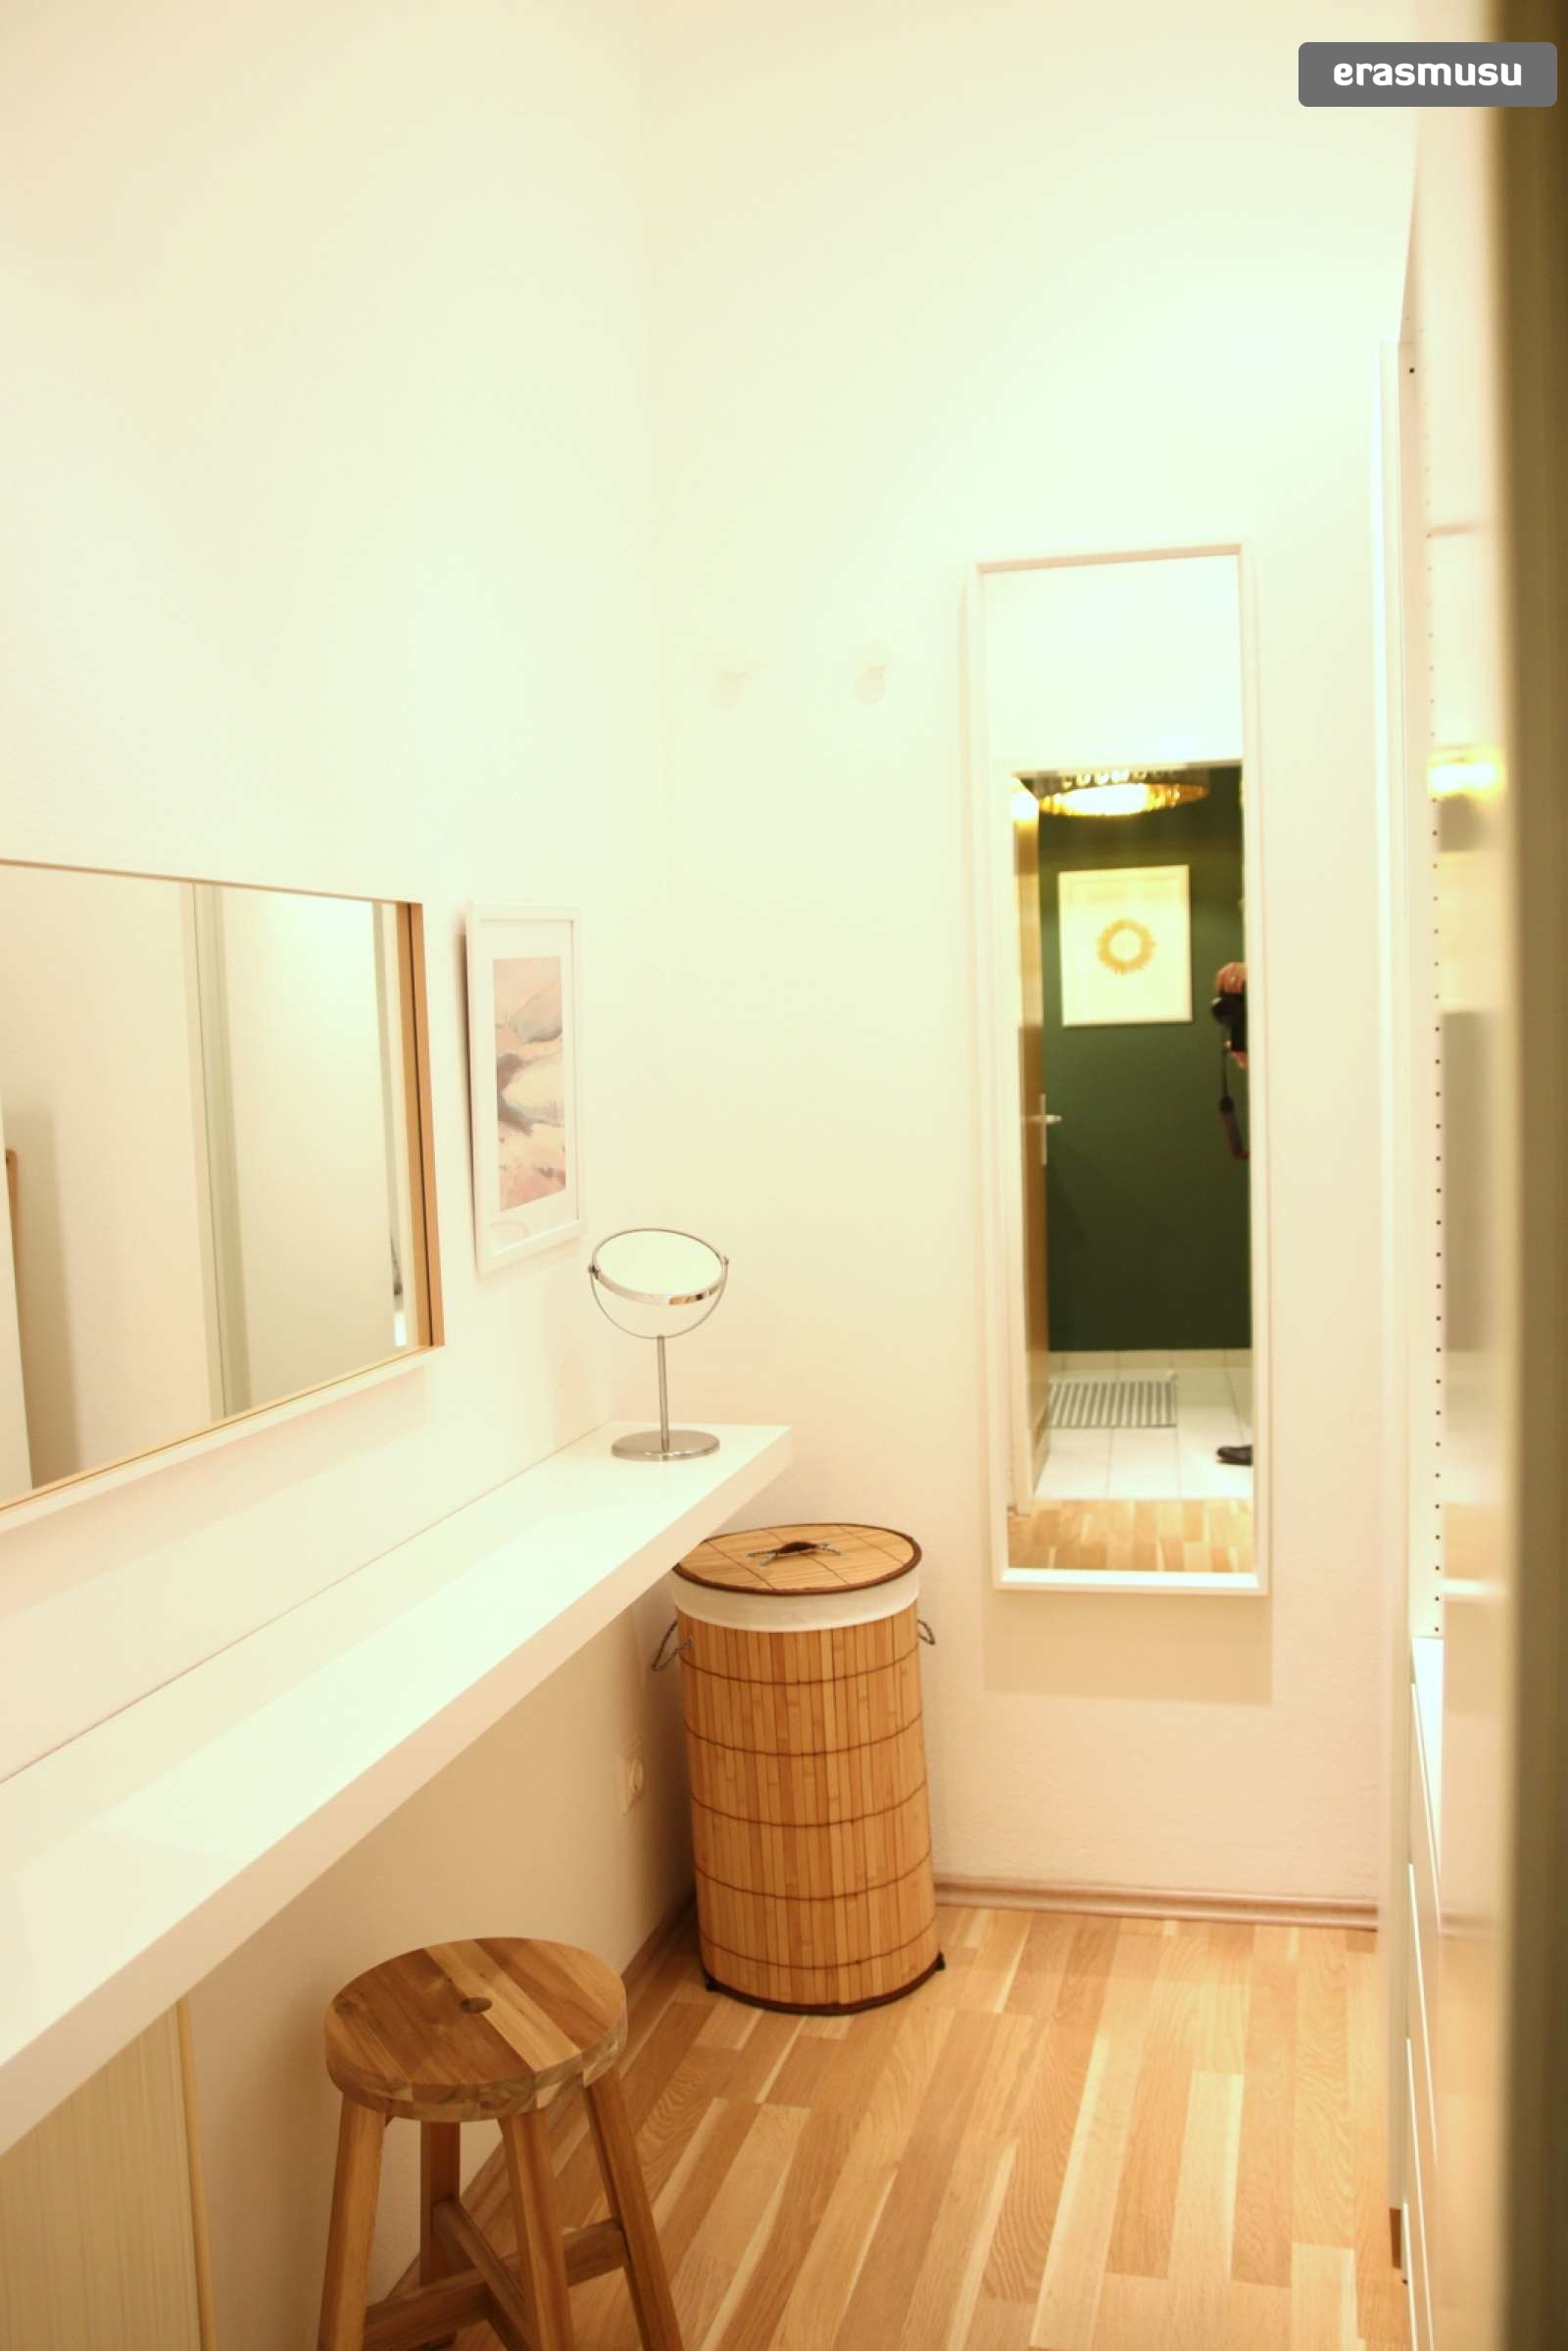 charming-studio-apartment-rent-wahring-a93f210faf44d8380a8c7aa3a